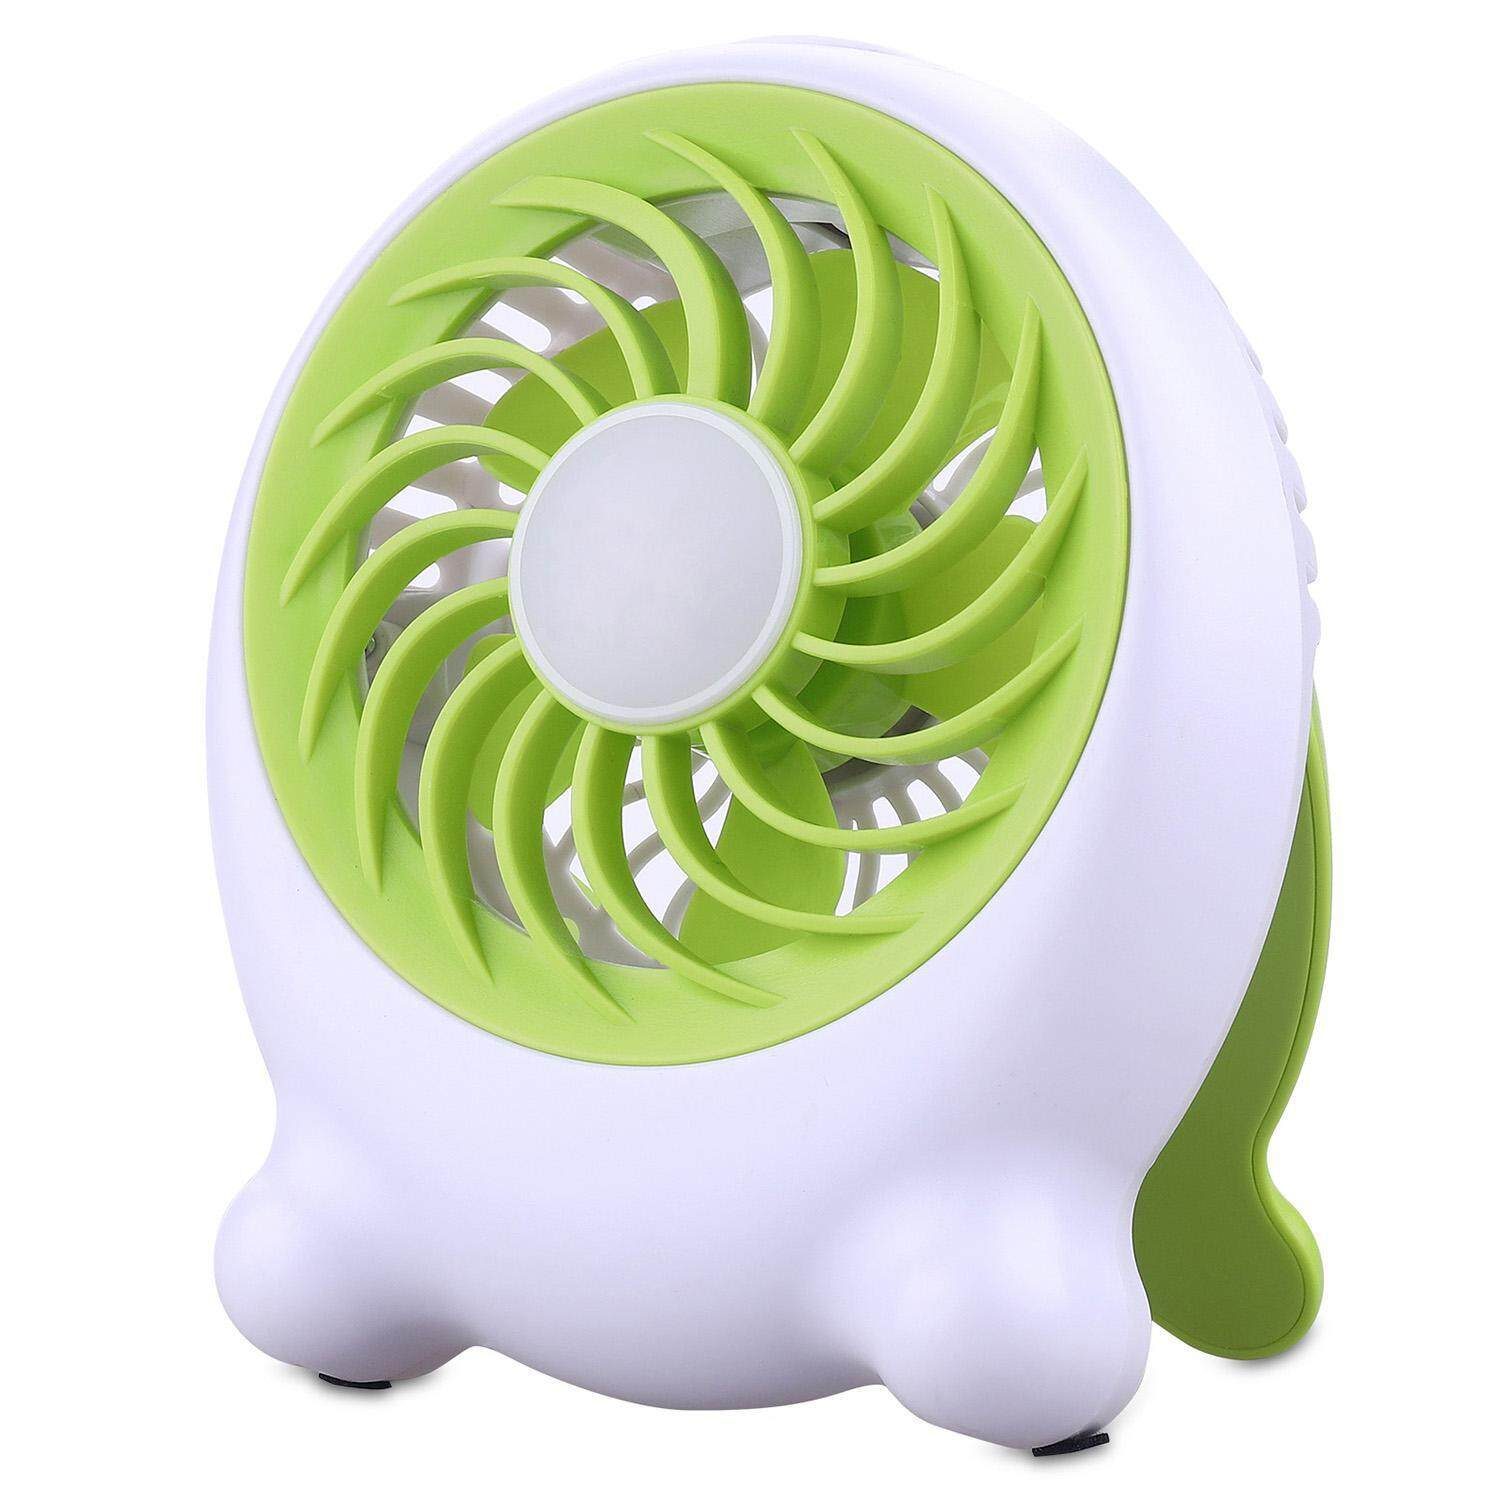 OrzBuy Multifunctional Outdoor Portable LED Lighting Mini Fan, USB Summer Mini Student Dormitory Fan Rechargeable Hand Carry - intl